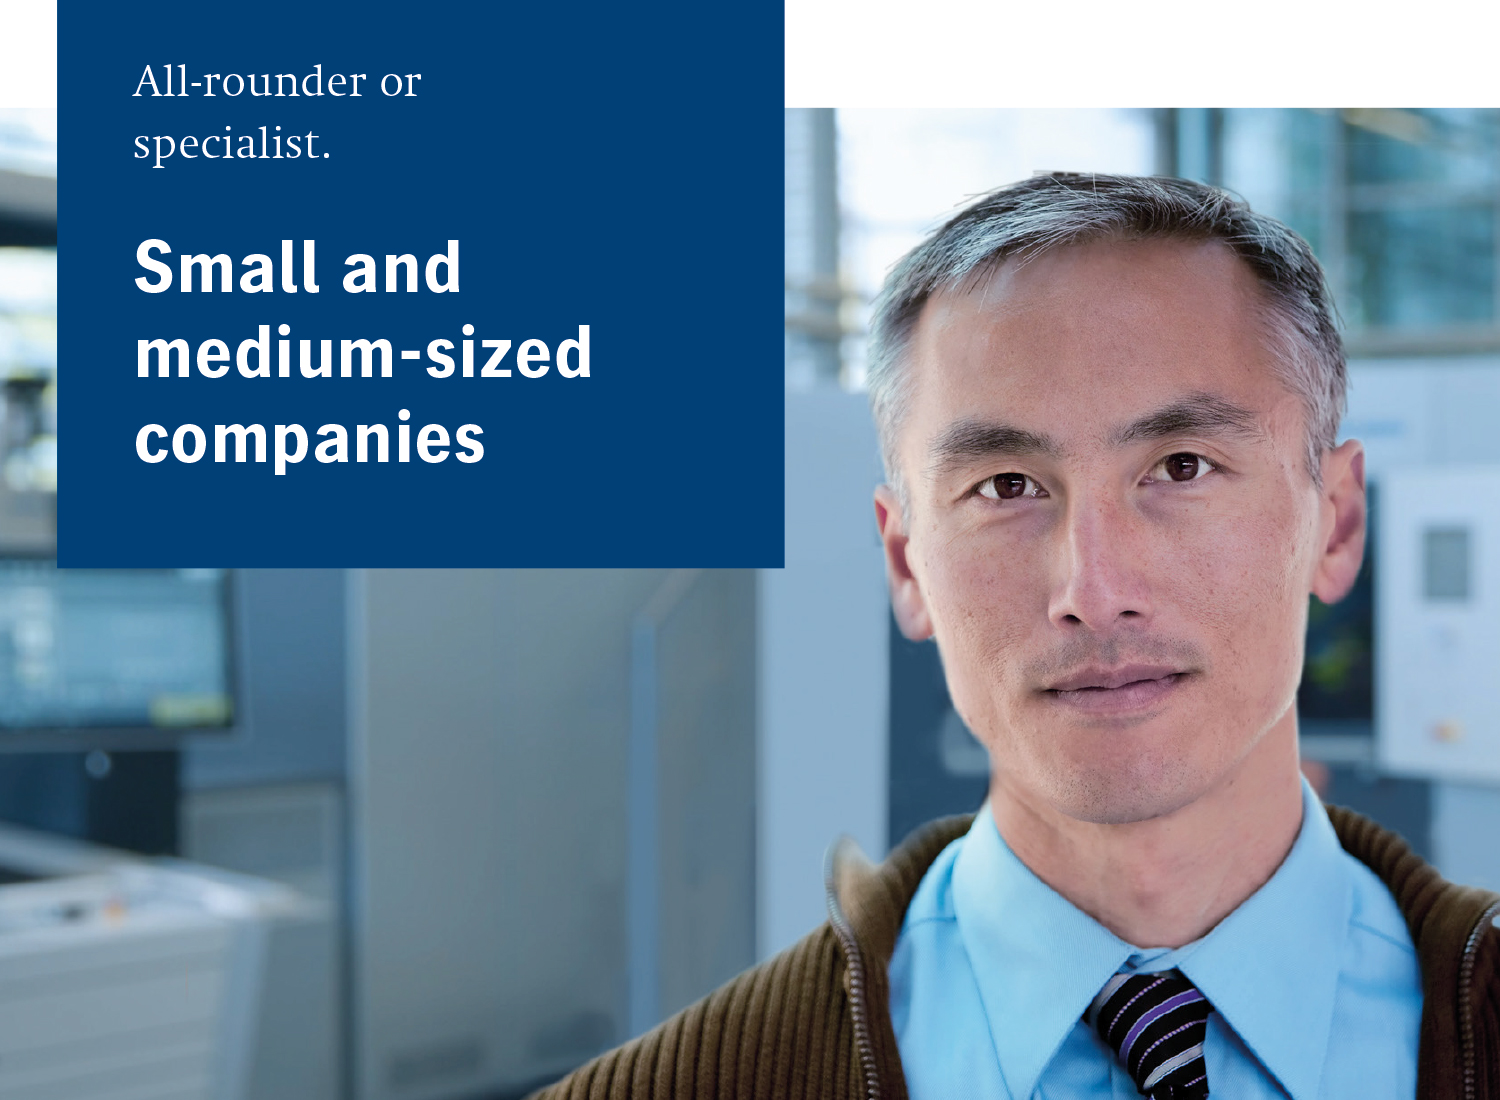 For Small & Medium-sized Companies